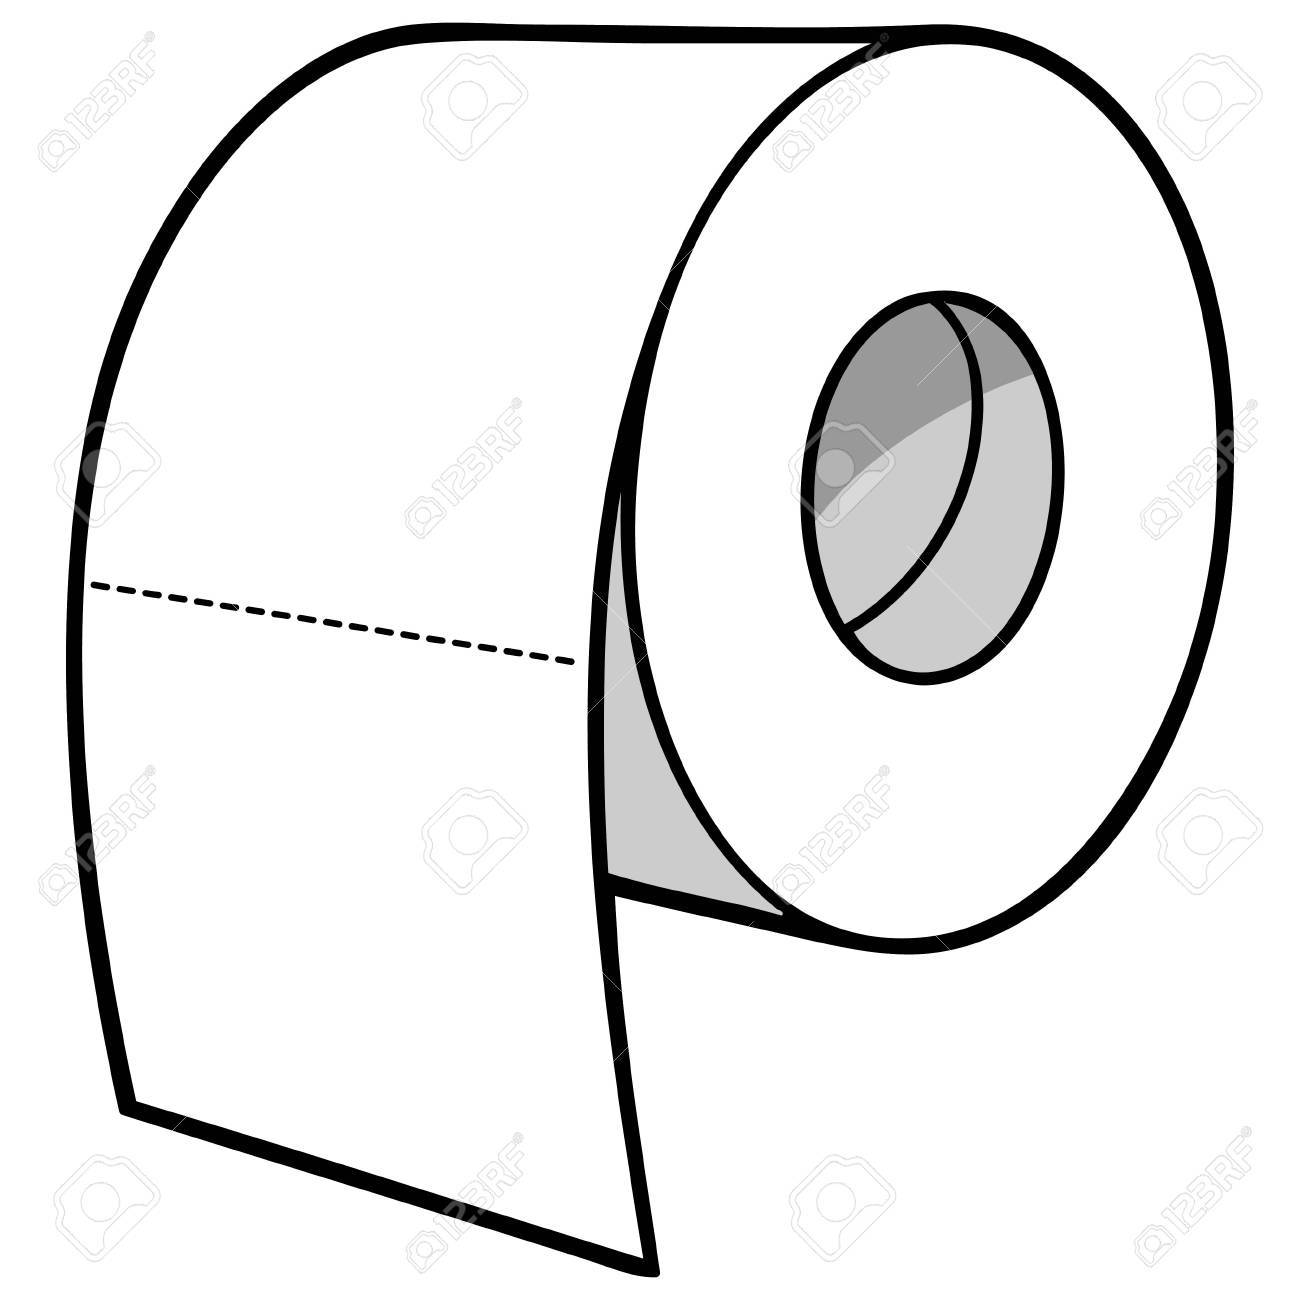 Toiletpaper clipart png royalty free download Toilet paper clipart free 5 » Clipart Portal png royalty free download